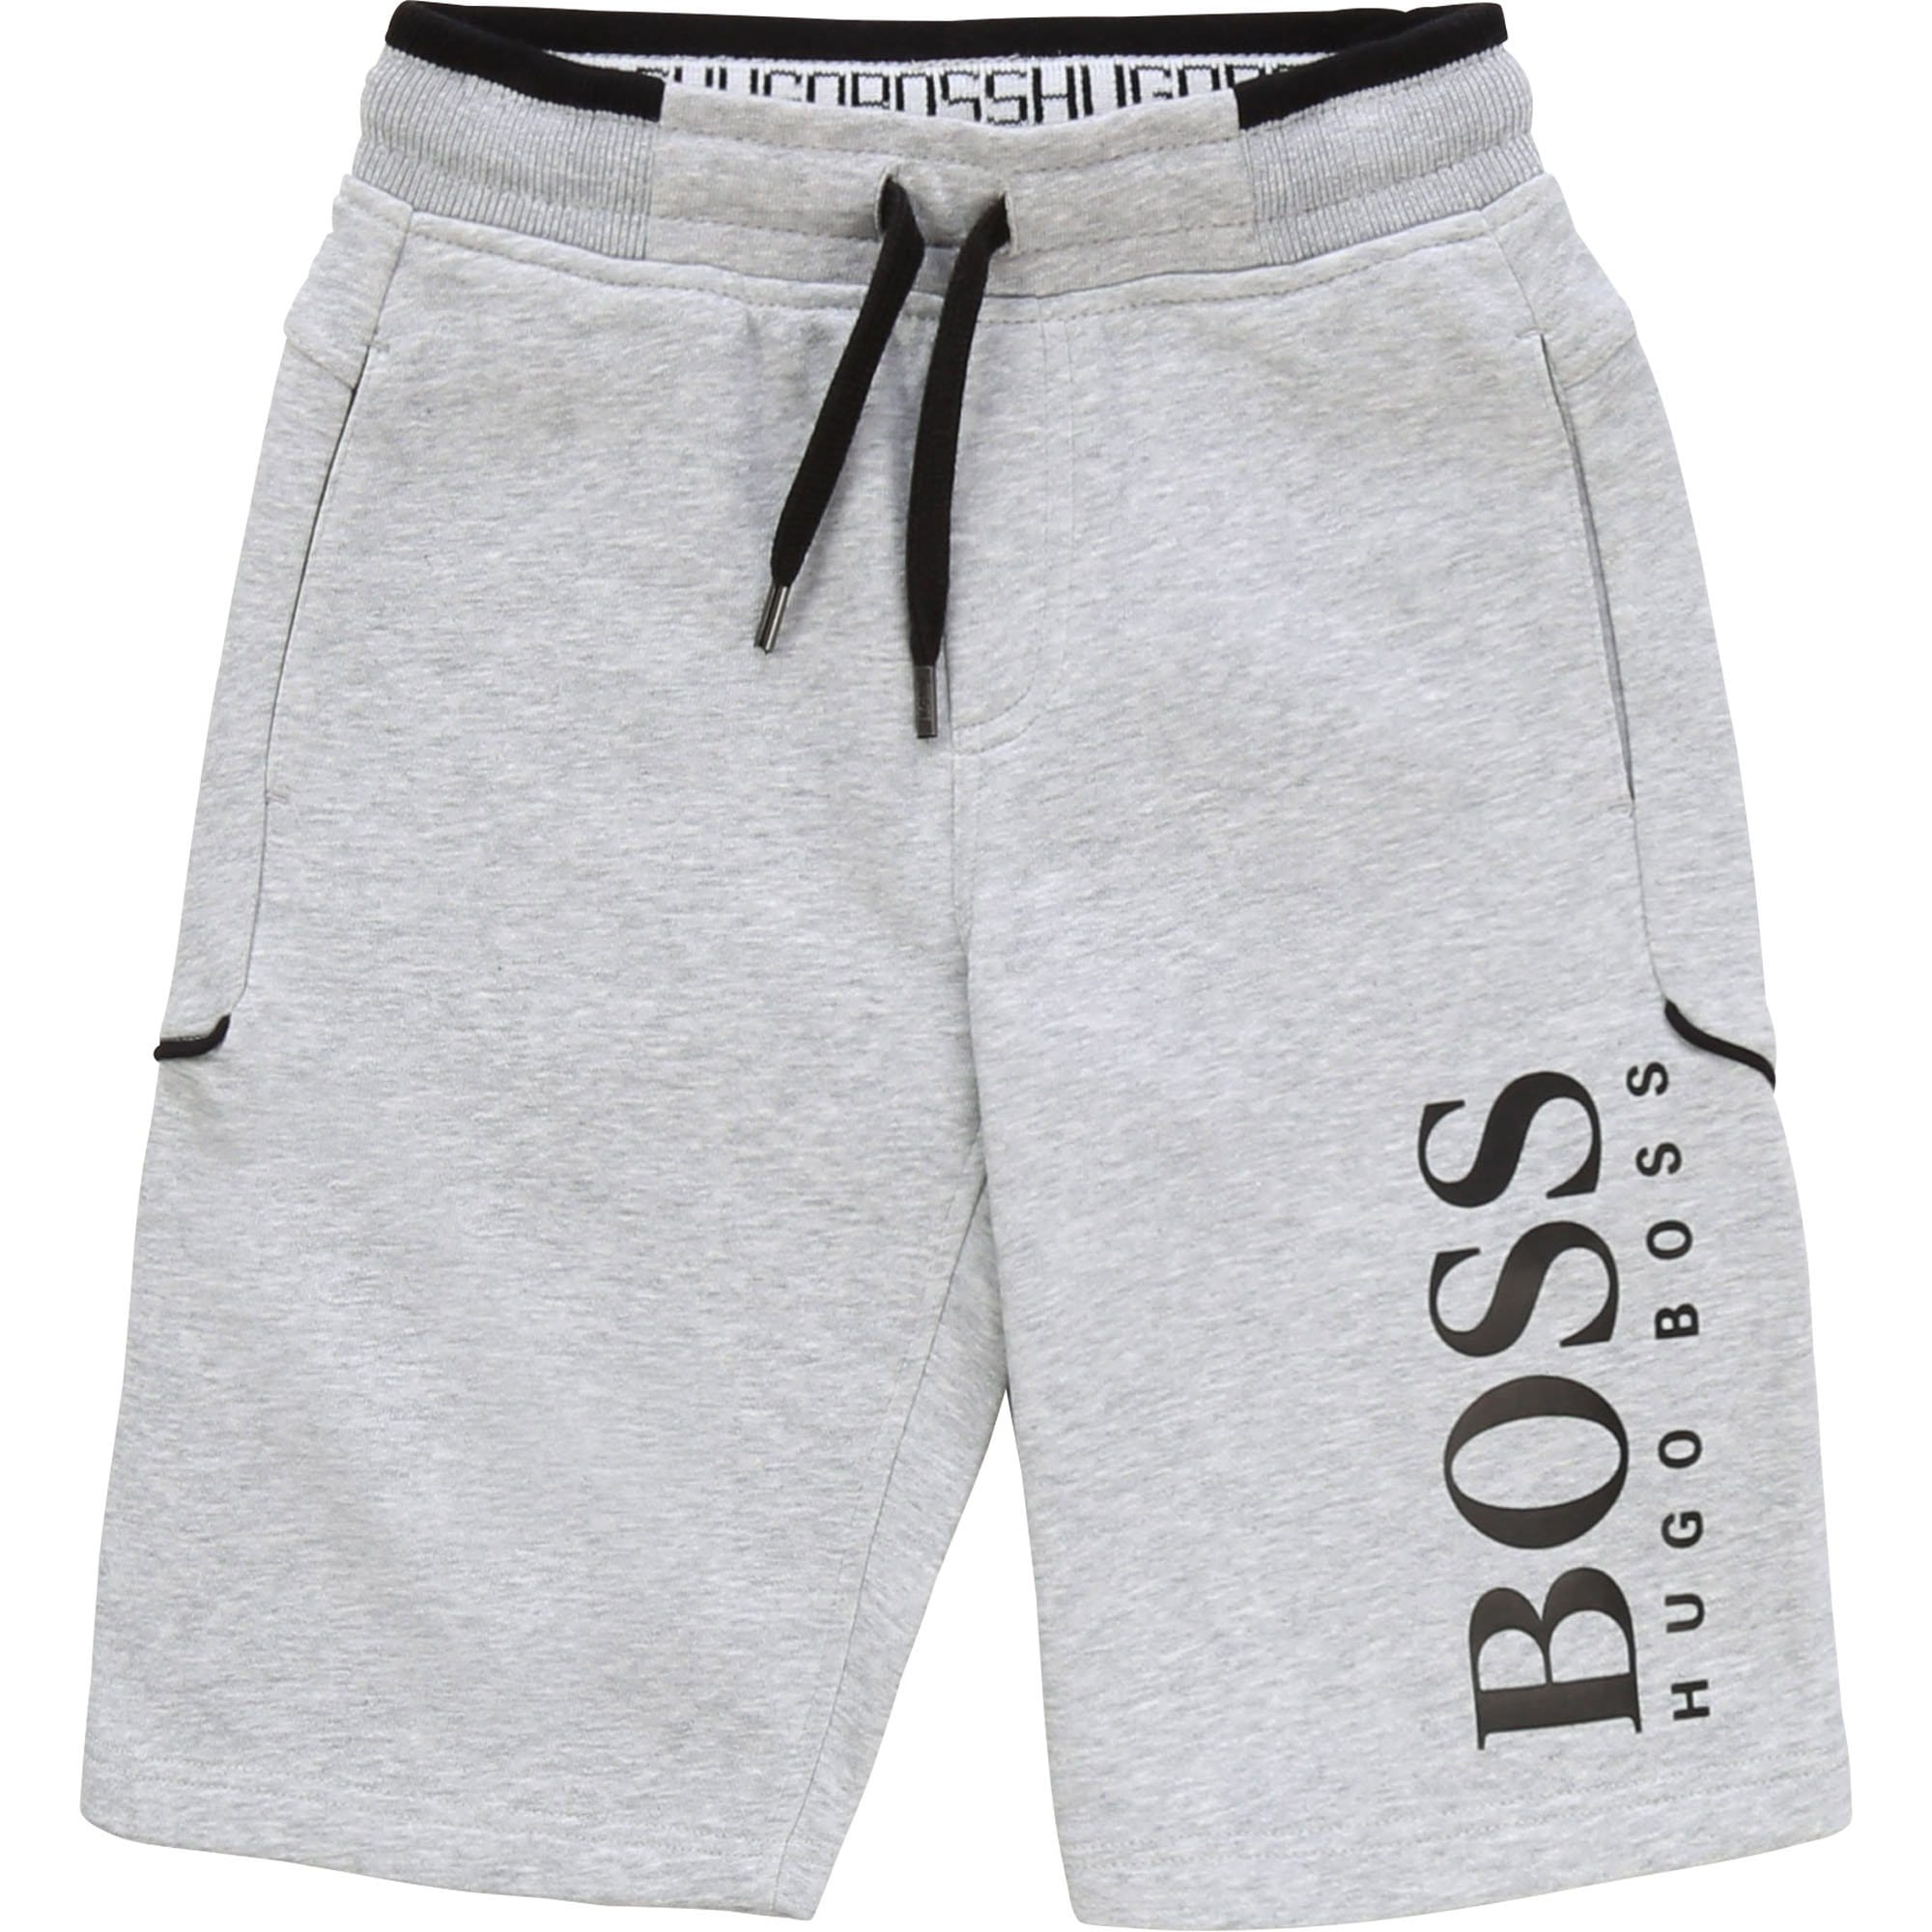 Hugo Boss Branded Track Shorts Chine Grey J24628/A32